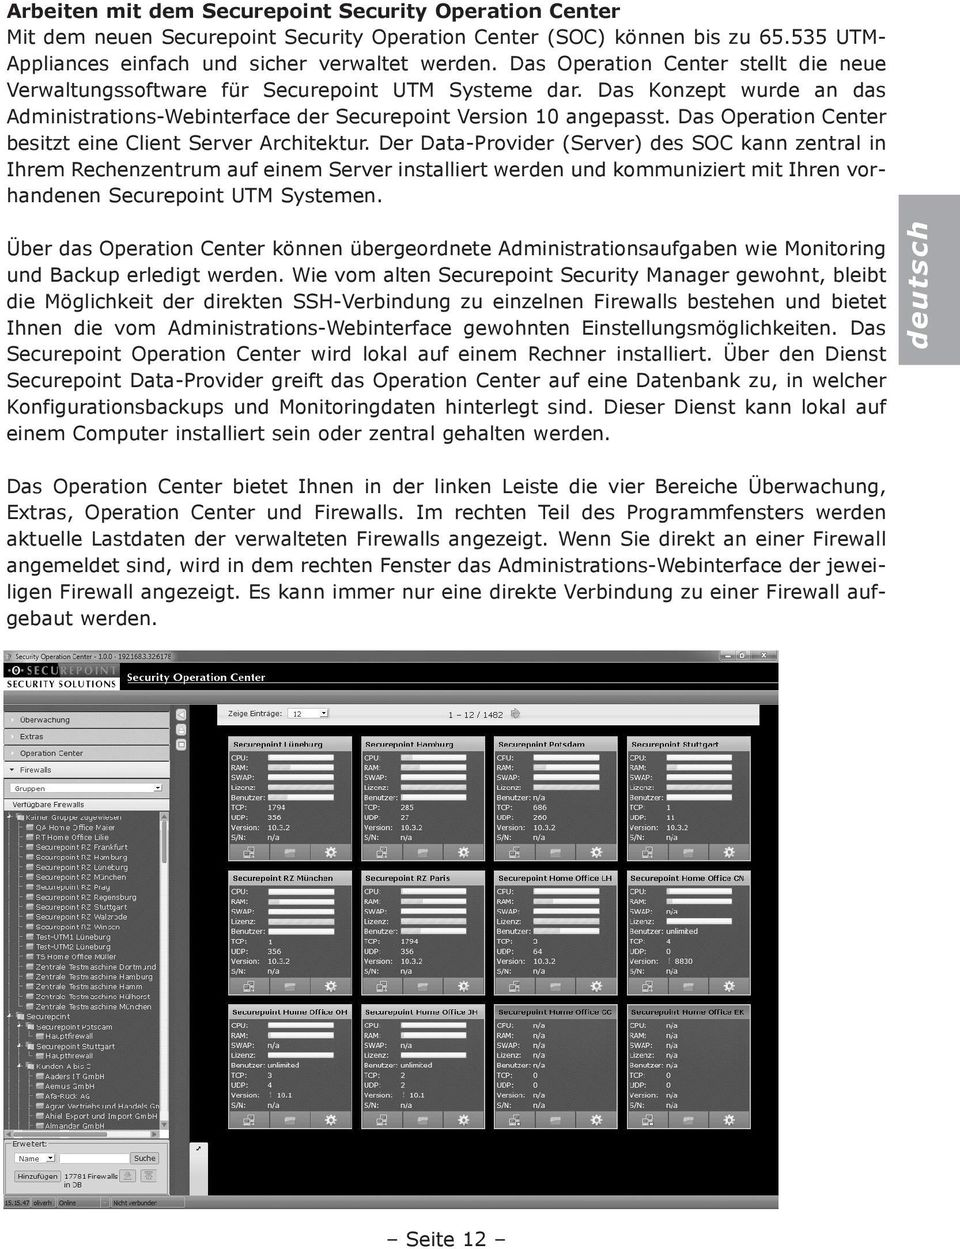 Das Operation Center besitzt eine Client Server Architektur.